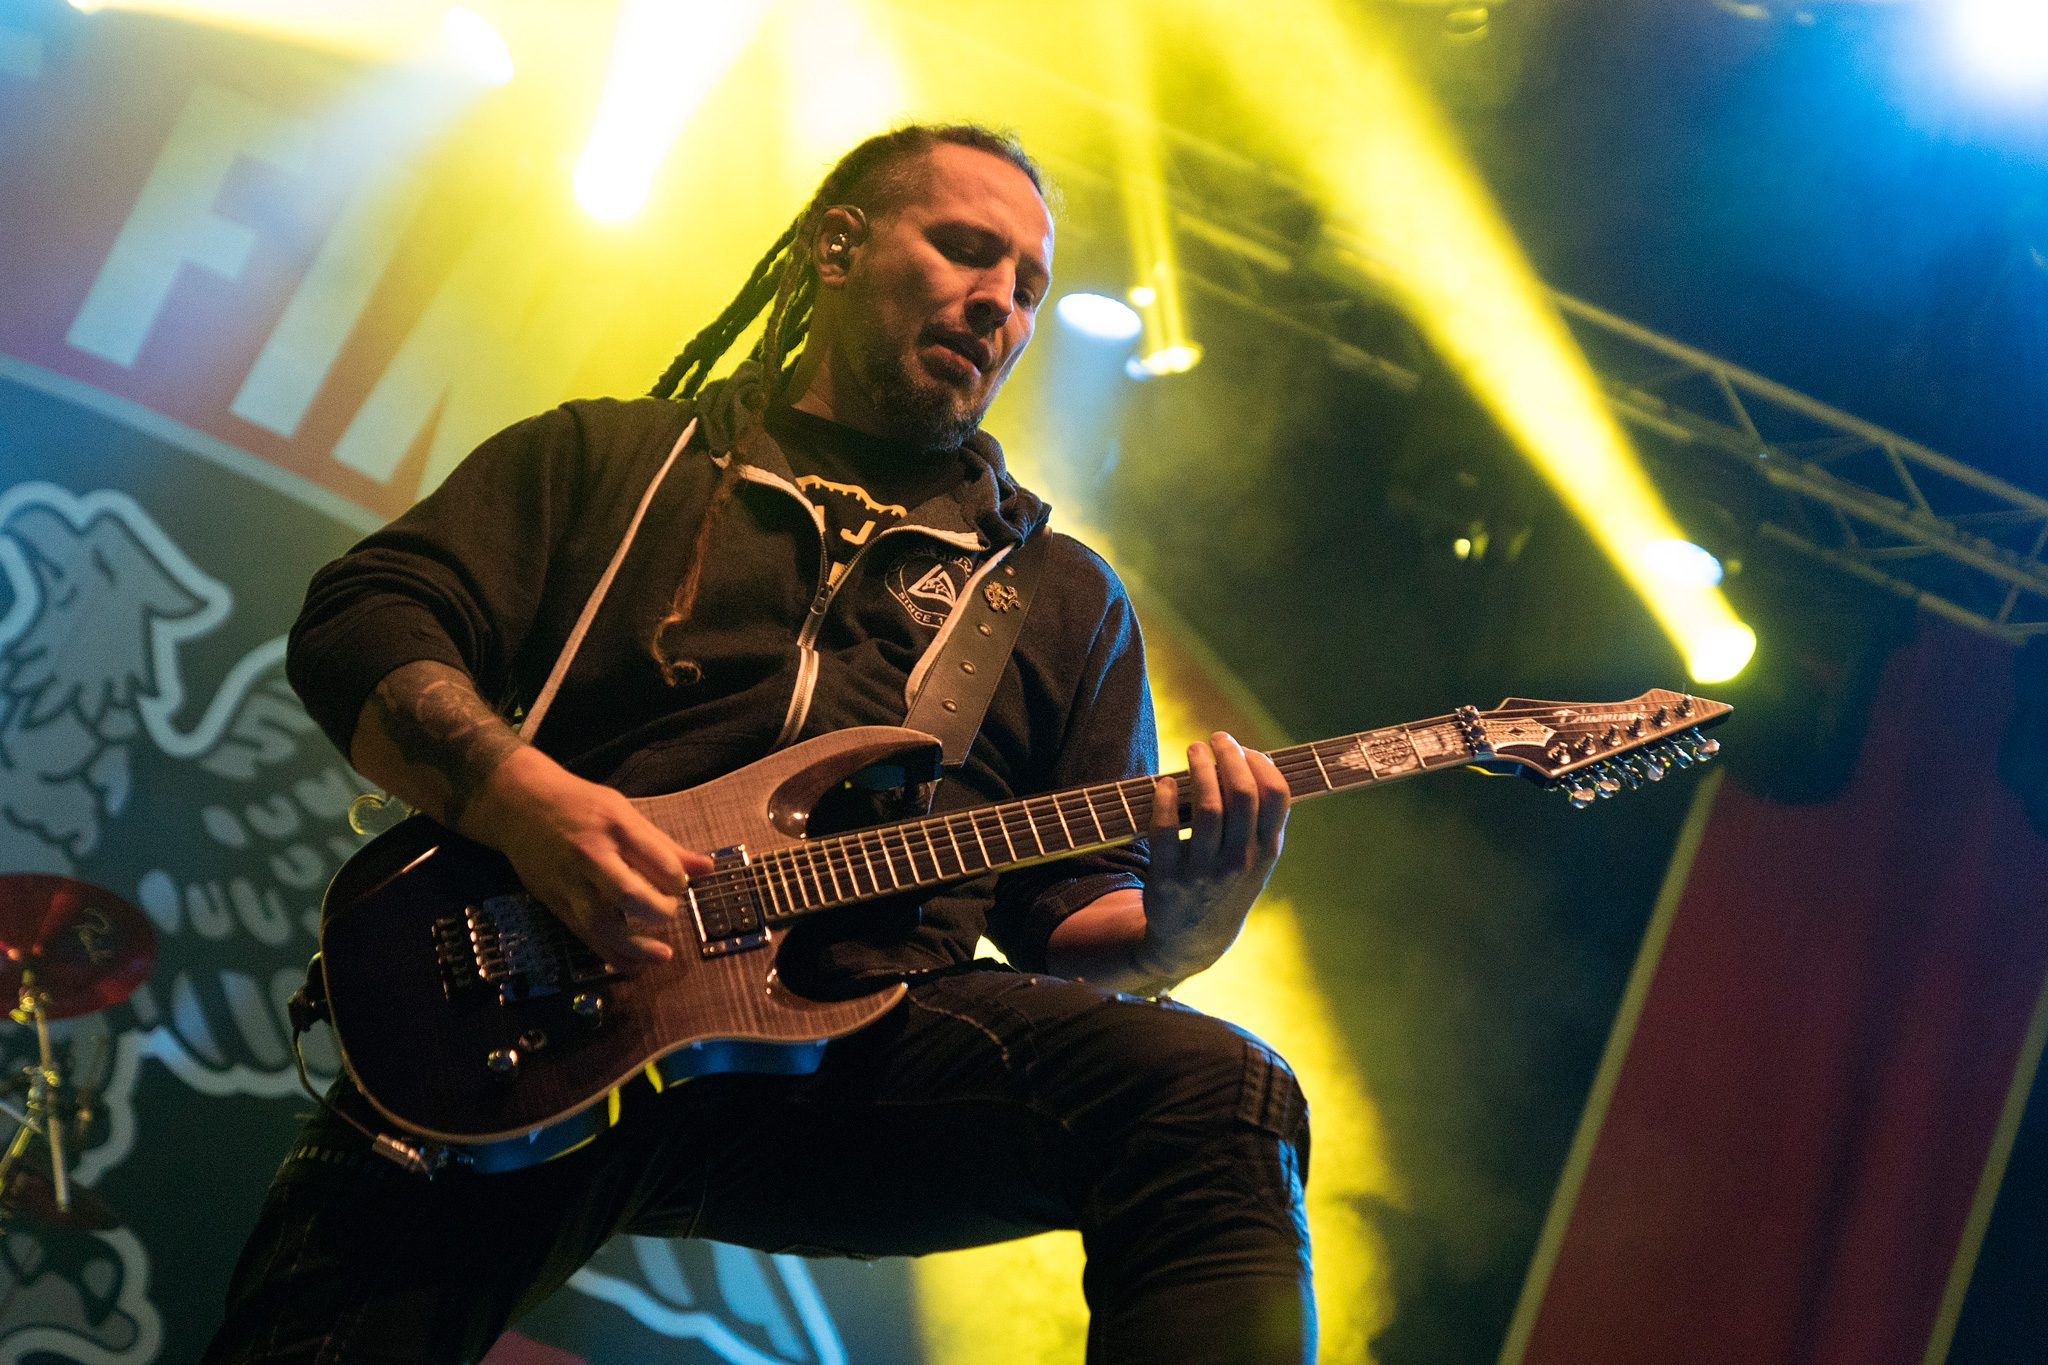 Zoltan Bathory, Five Finger Death Punch